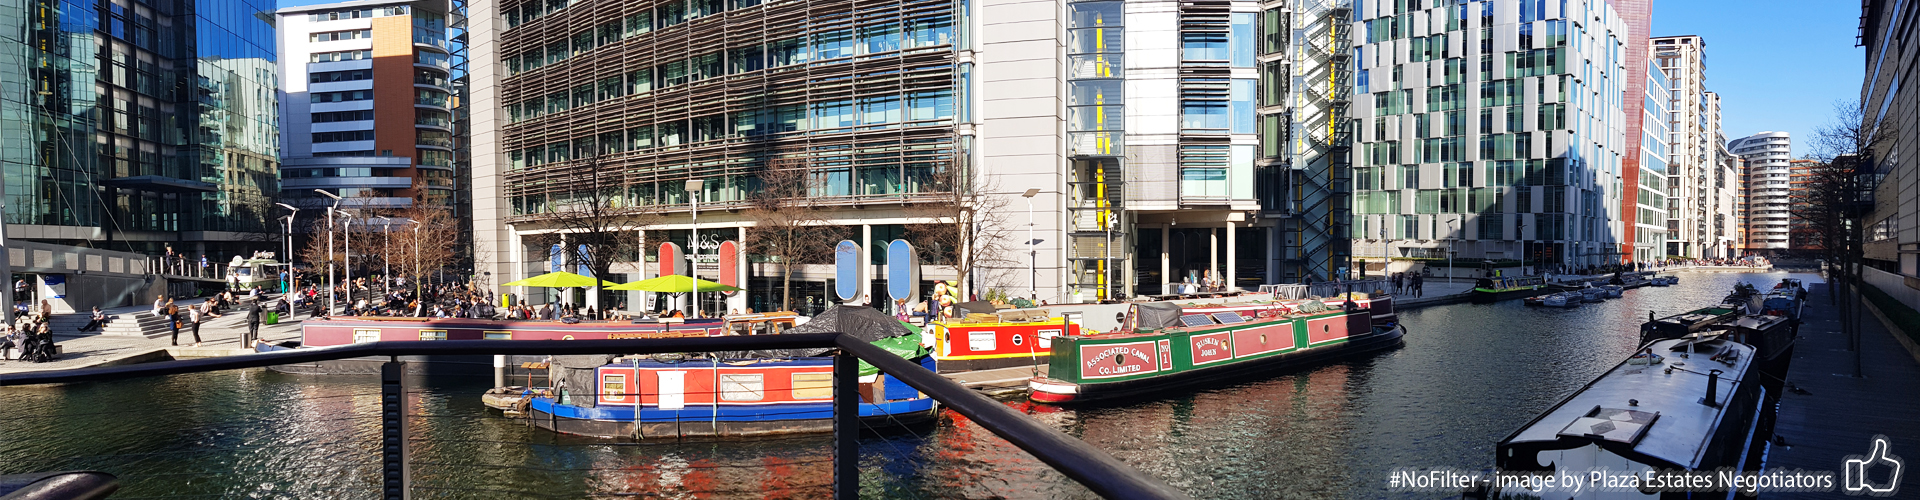 Paddington Basin by Plaza Estates